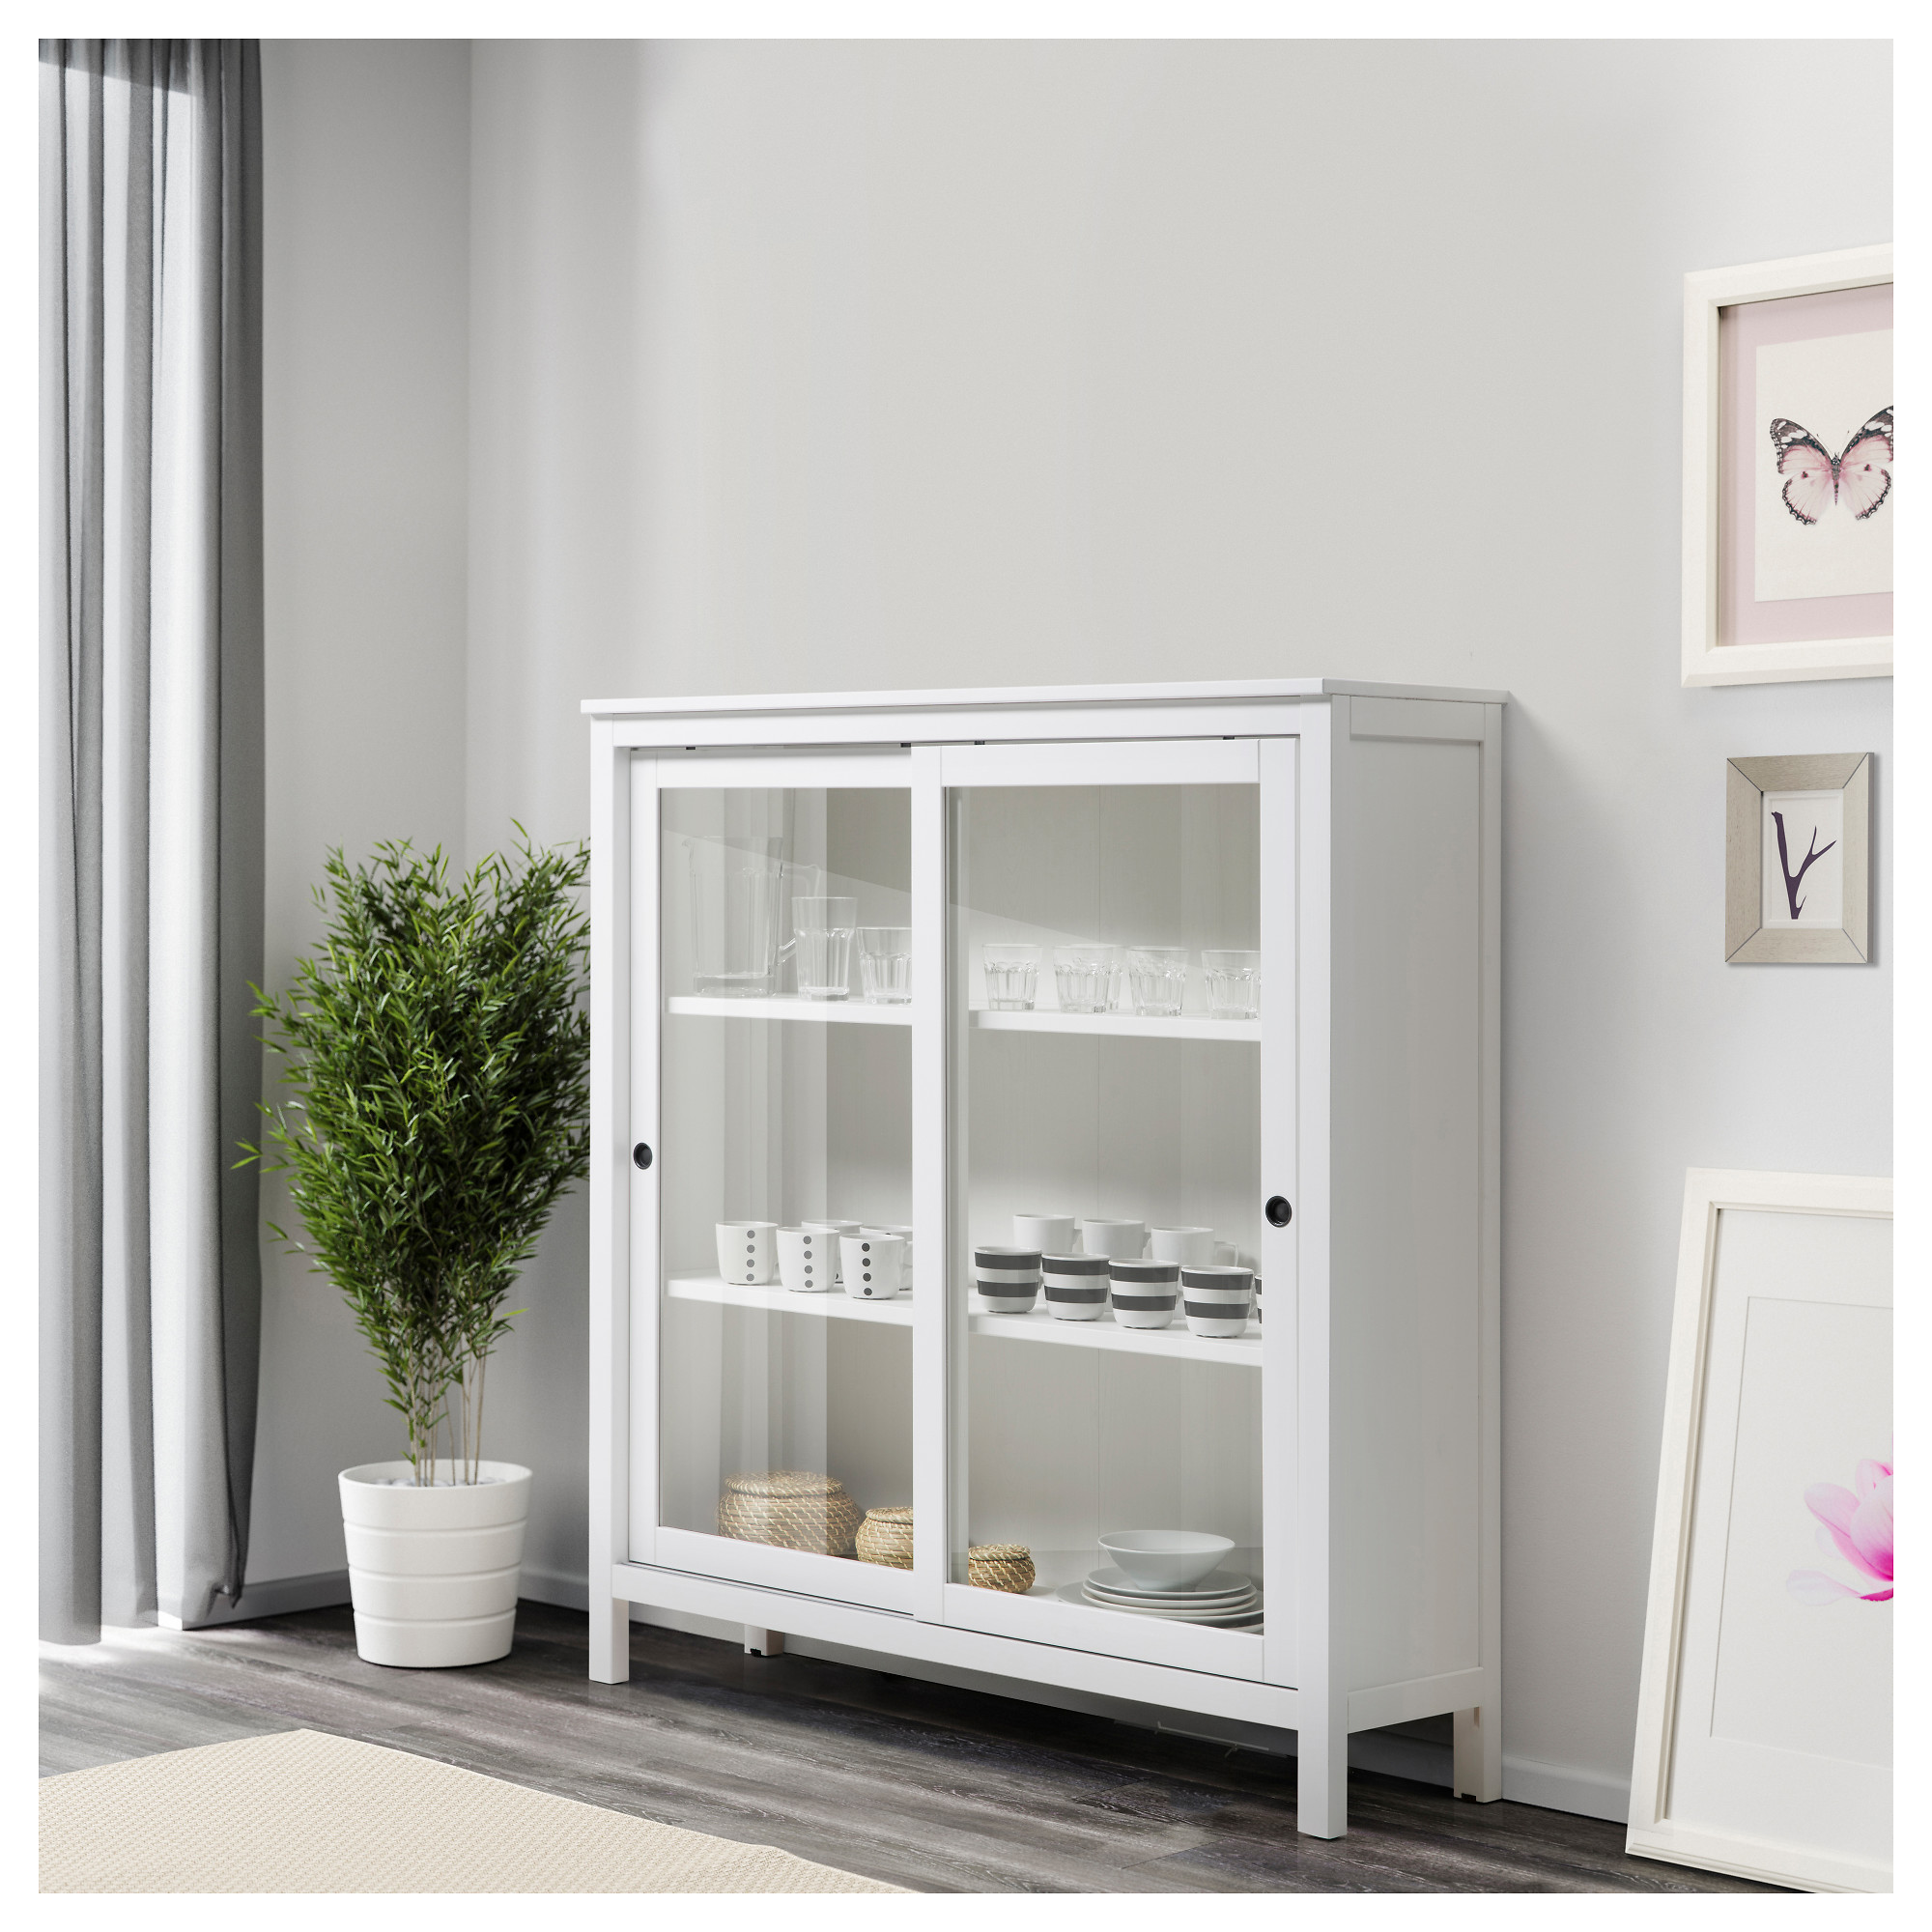 Trend Ikea Glass Door Cabinet Painting